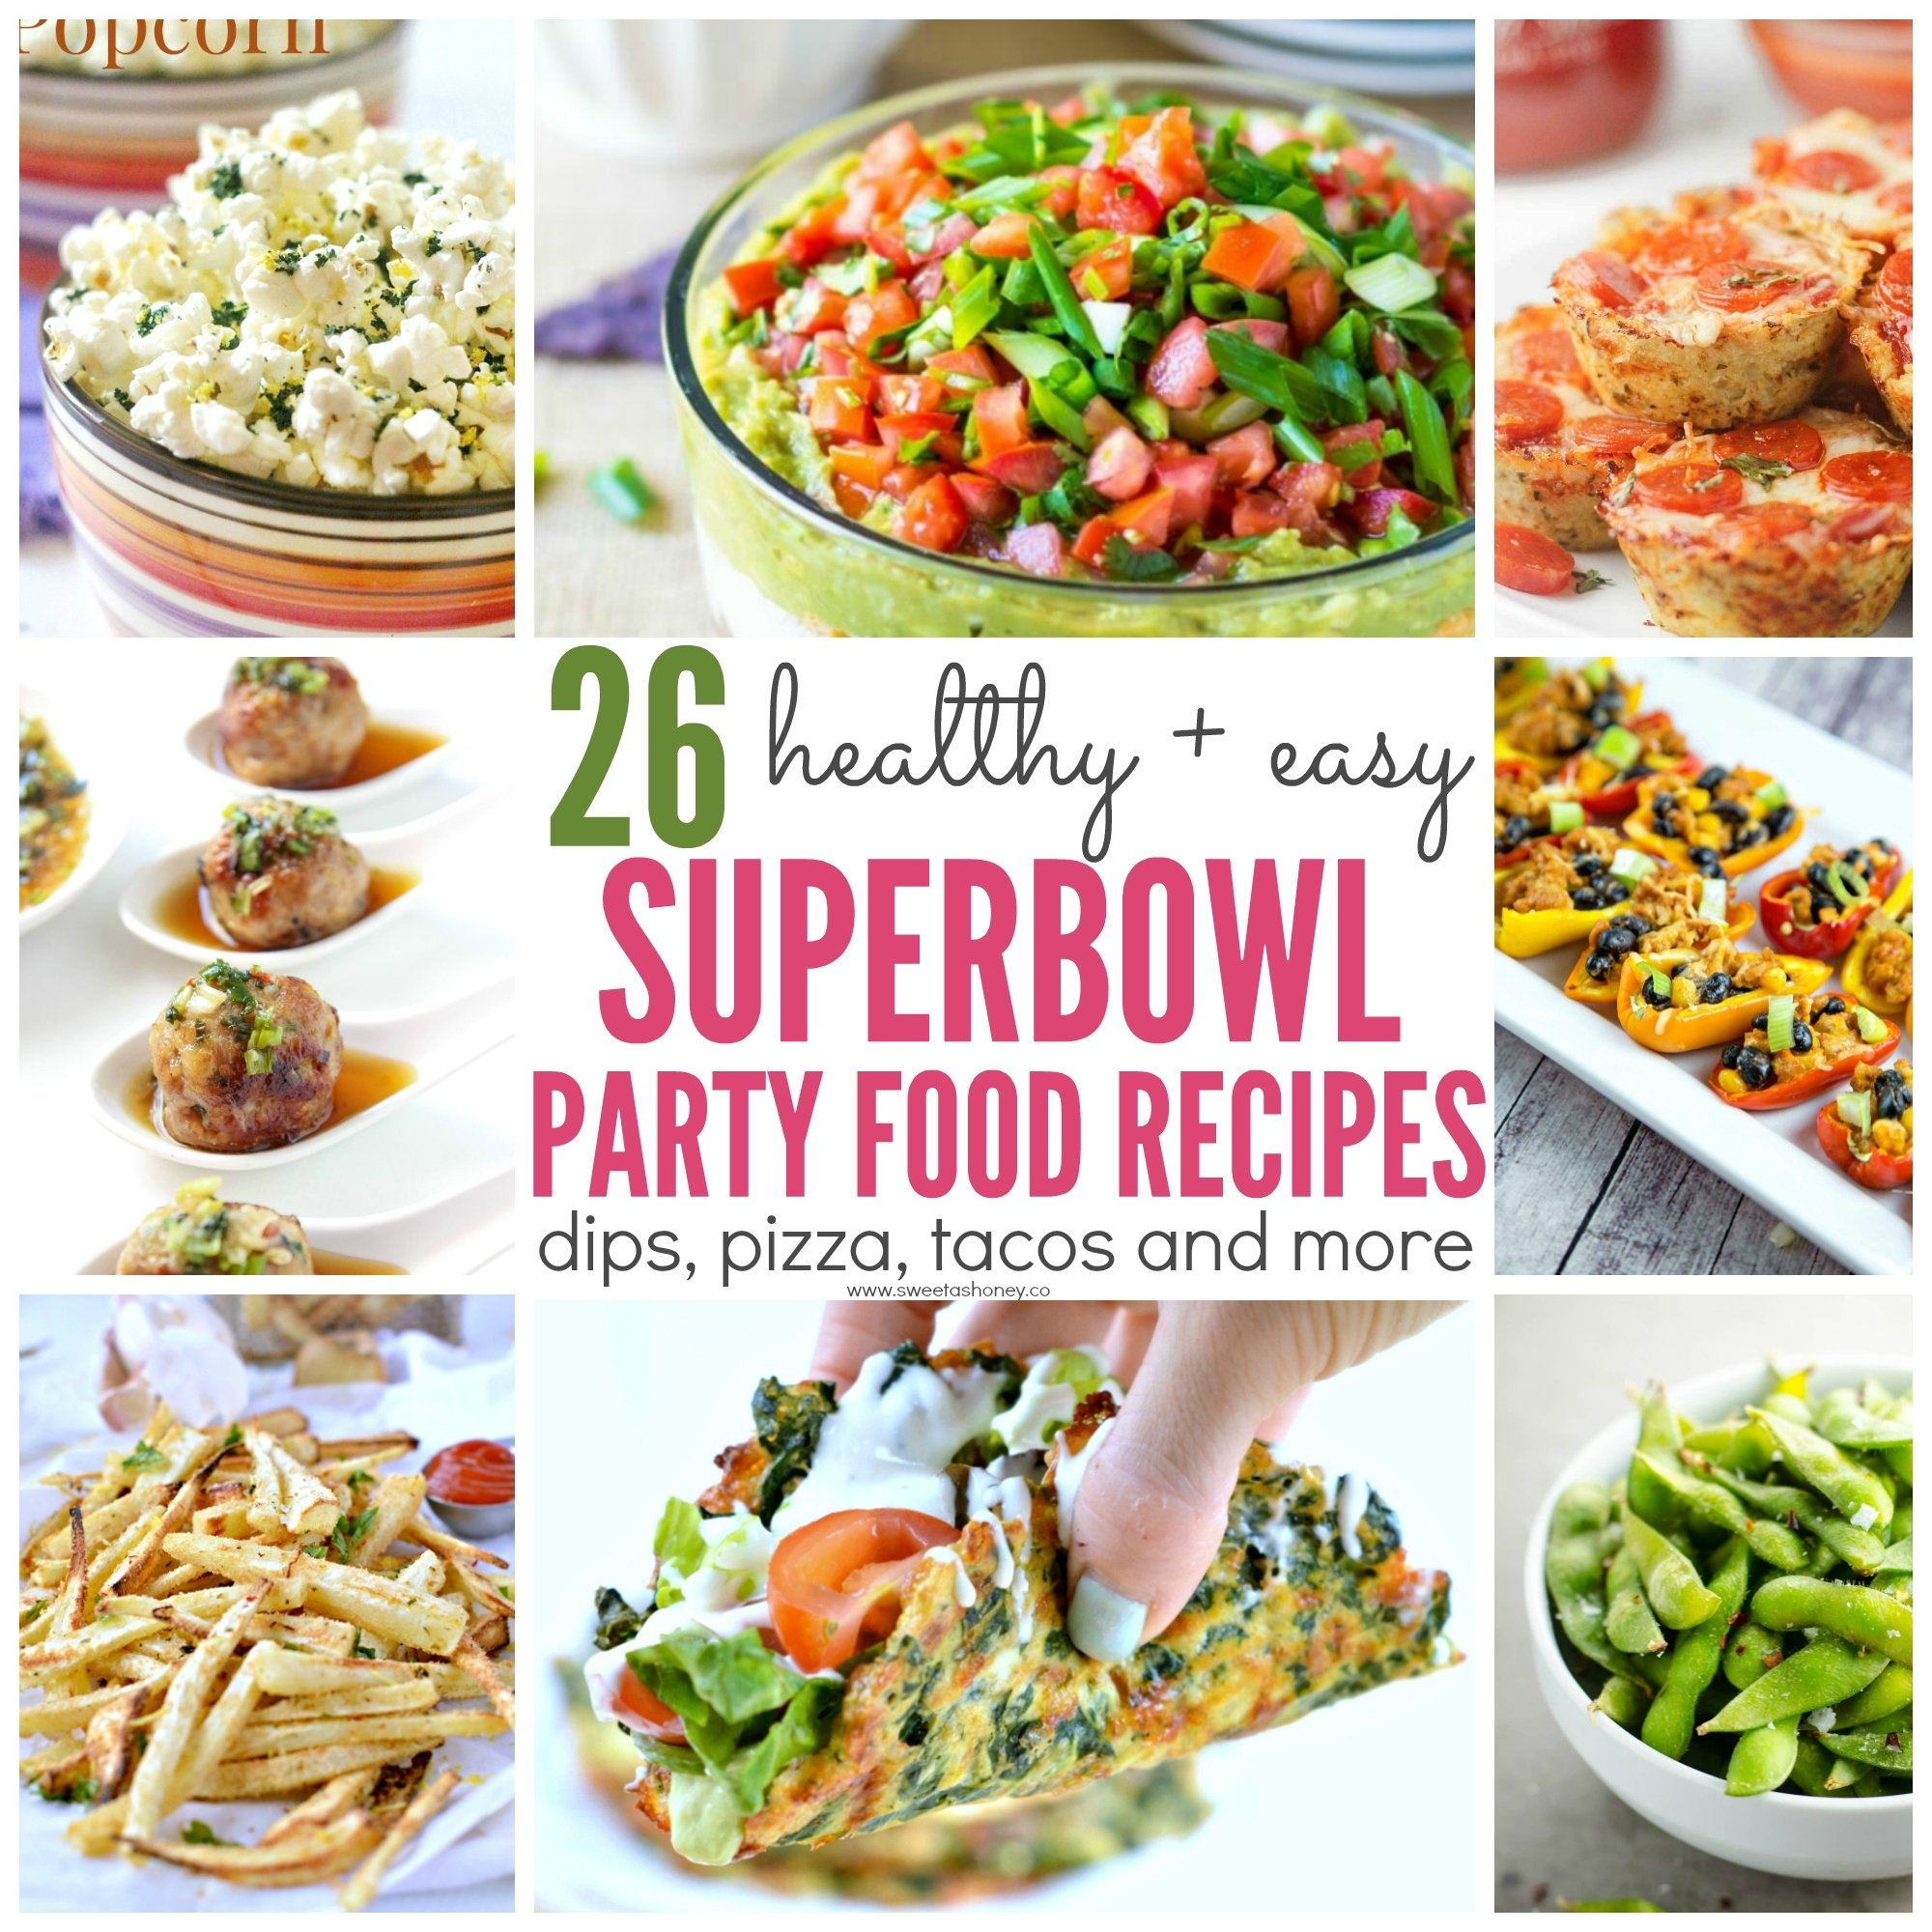 26 healthy superbowl snacks guilt free-dips, pizza - sweetashoney